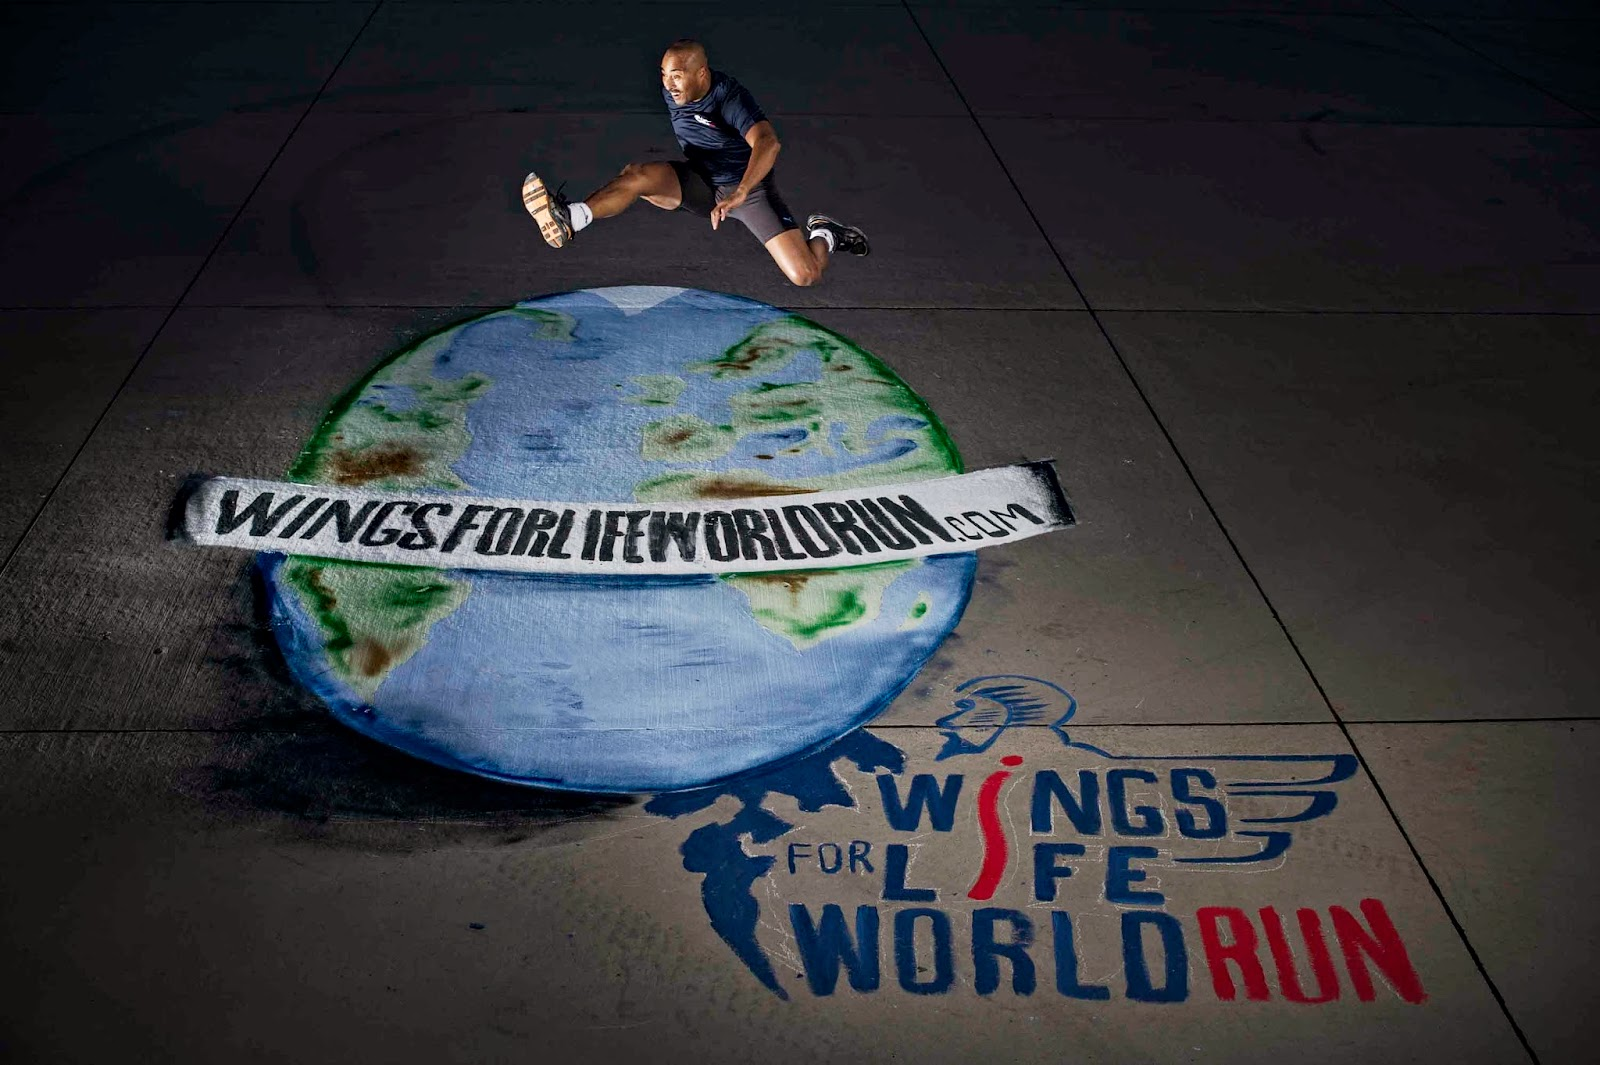 ¿Te apuntas conmigo a Wings For Life World Run?